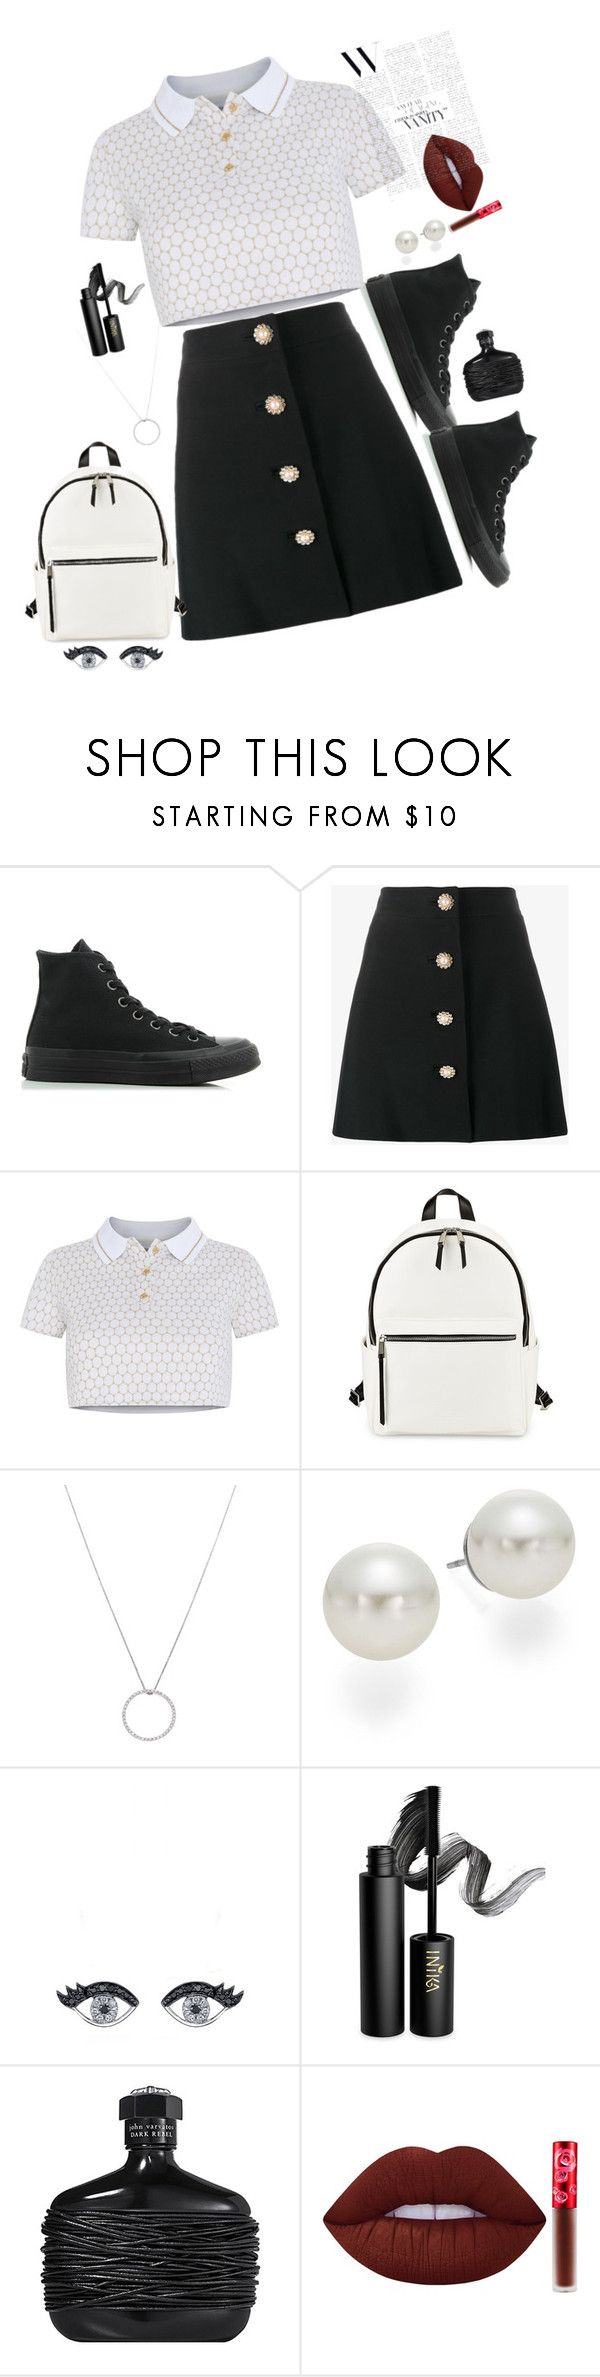 """▪️monochrome▫️"" by taranbystarlight ❤ liked on Polyvore featuring Converse, Miu Miu, Adriana Iglesias, French Connection, Roberto Coin, AK Anne Klein, INIKA, John Varvatos and Lime Crime"